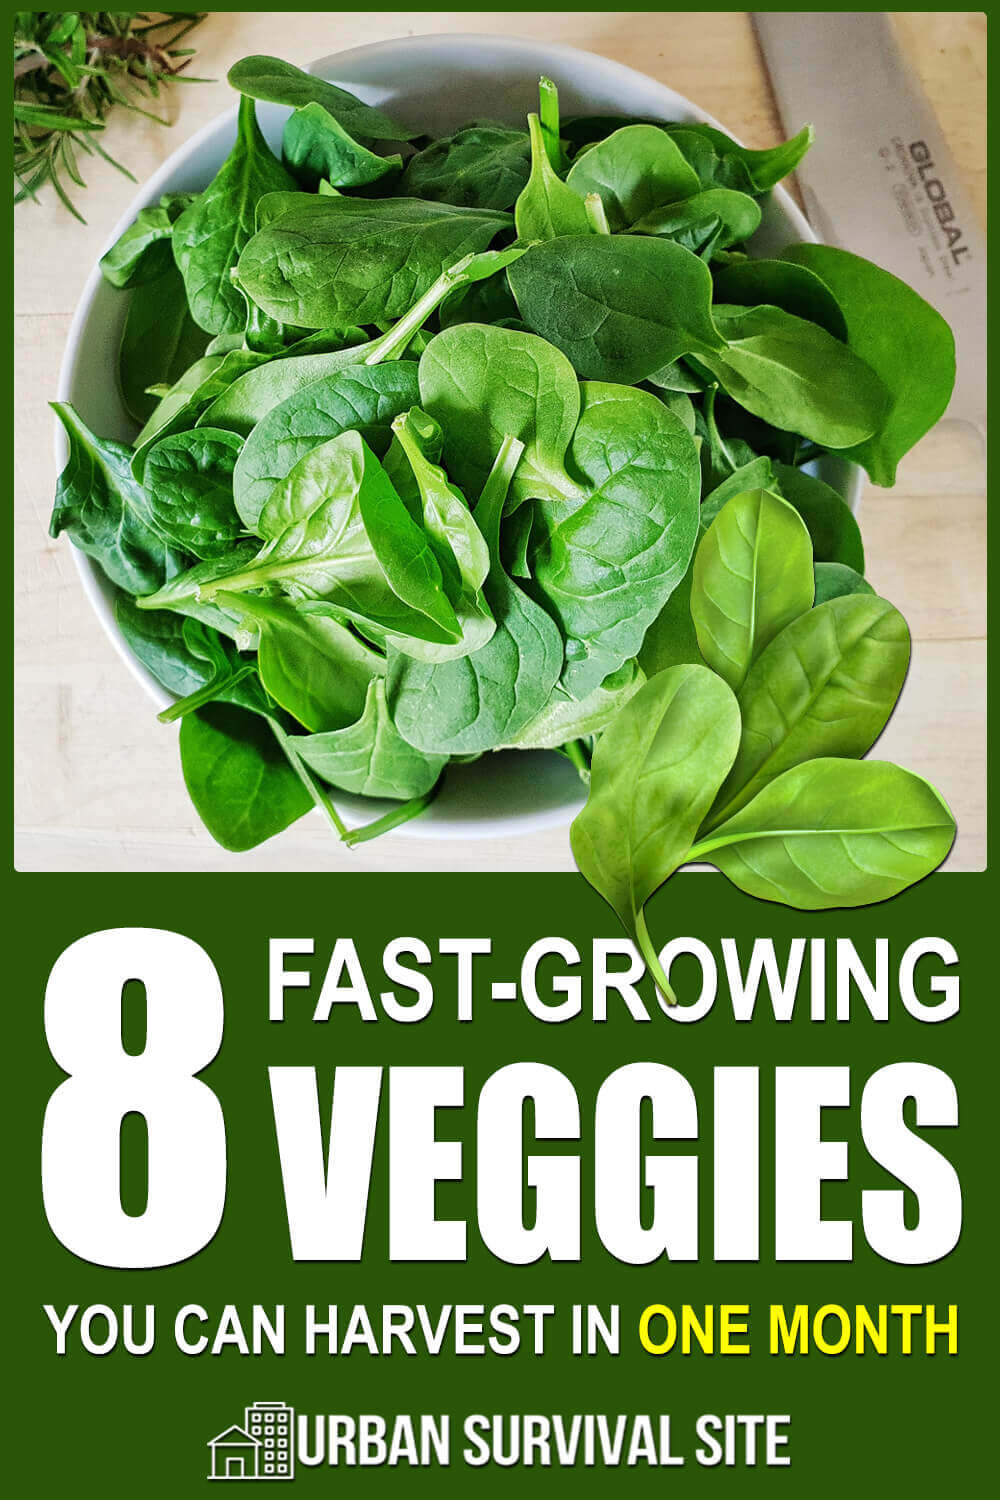 8 Fast-Growing Veggies You Can Harvest In One Month